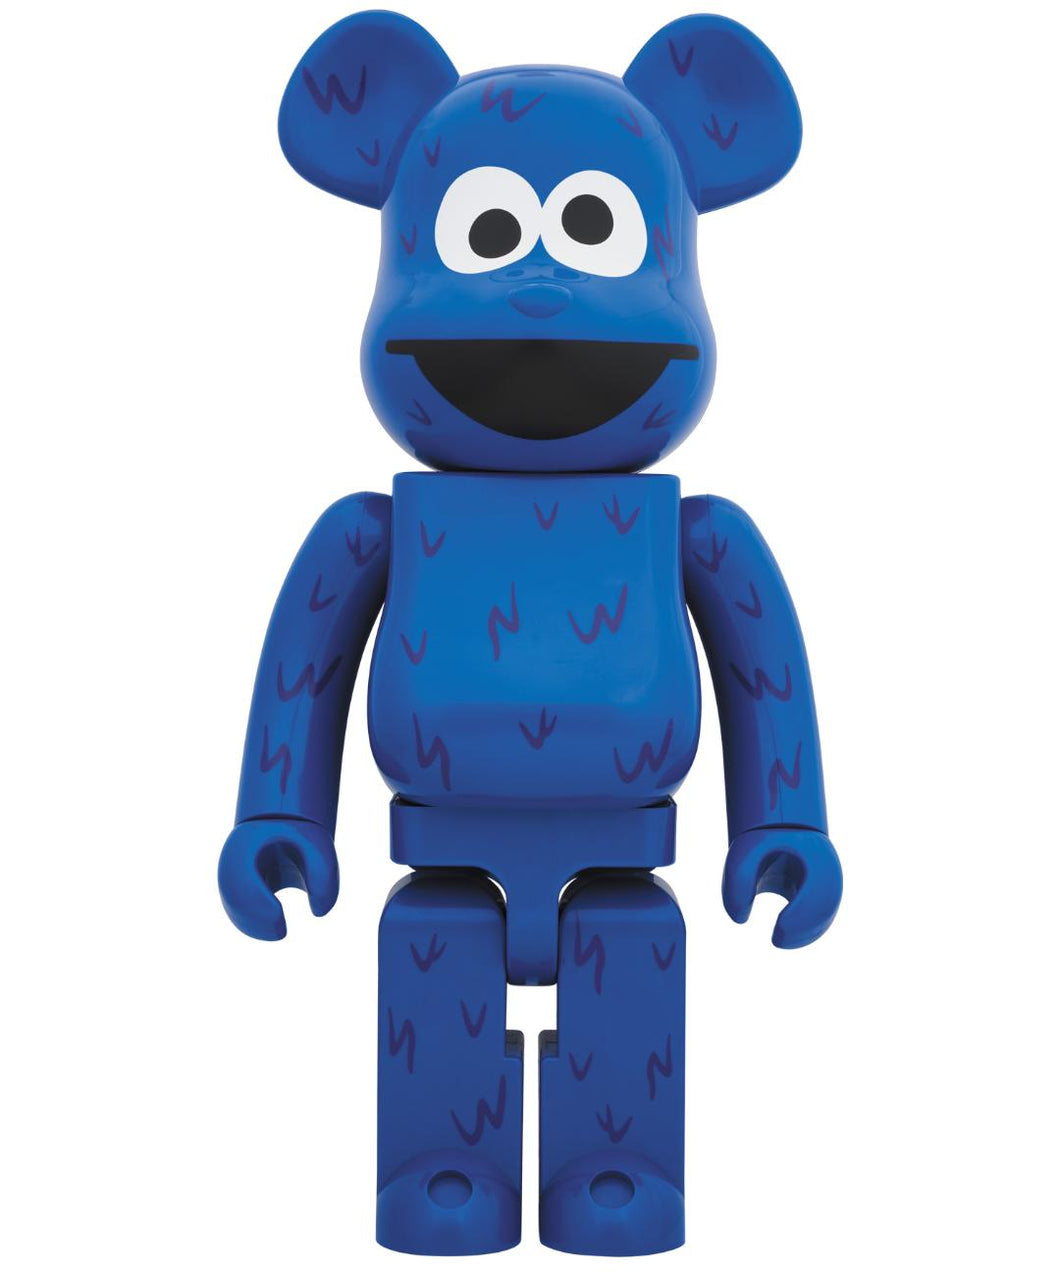 Cookie Monster 1000% Bearbrick